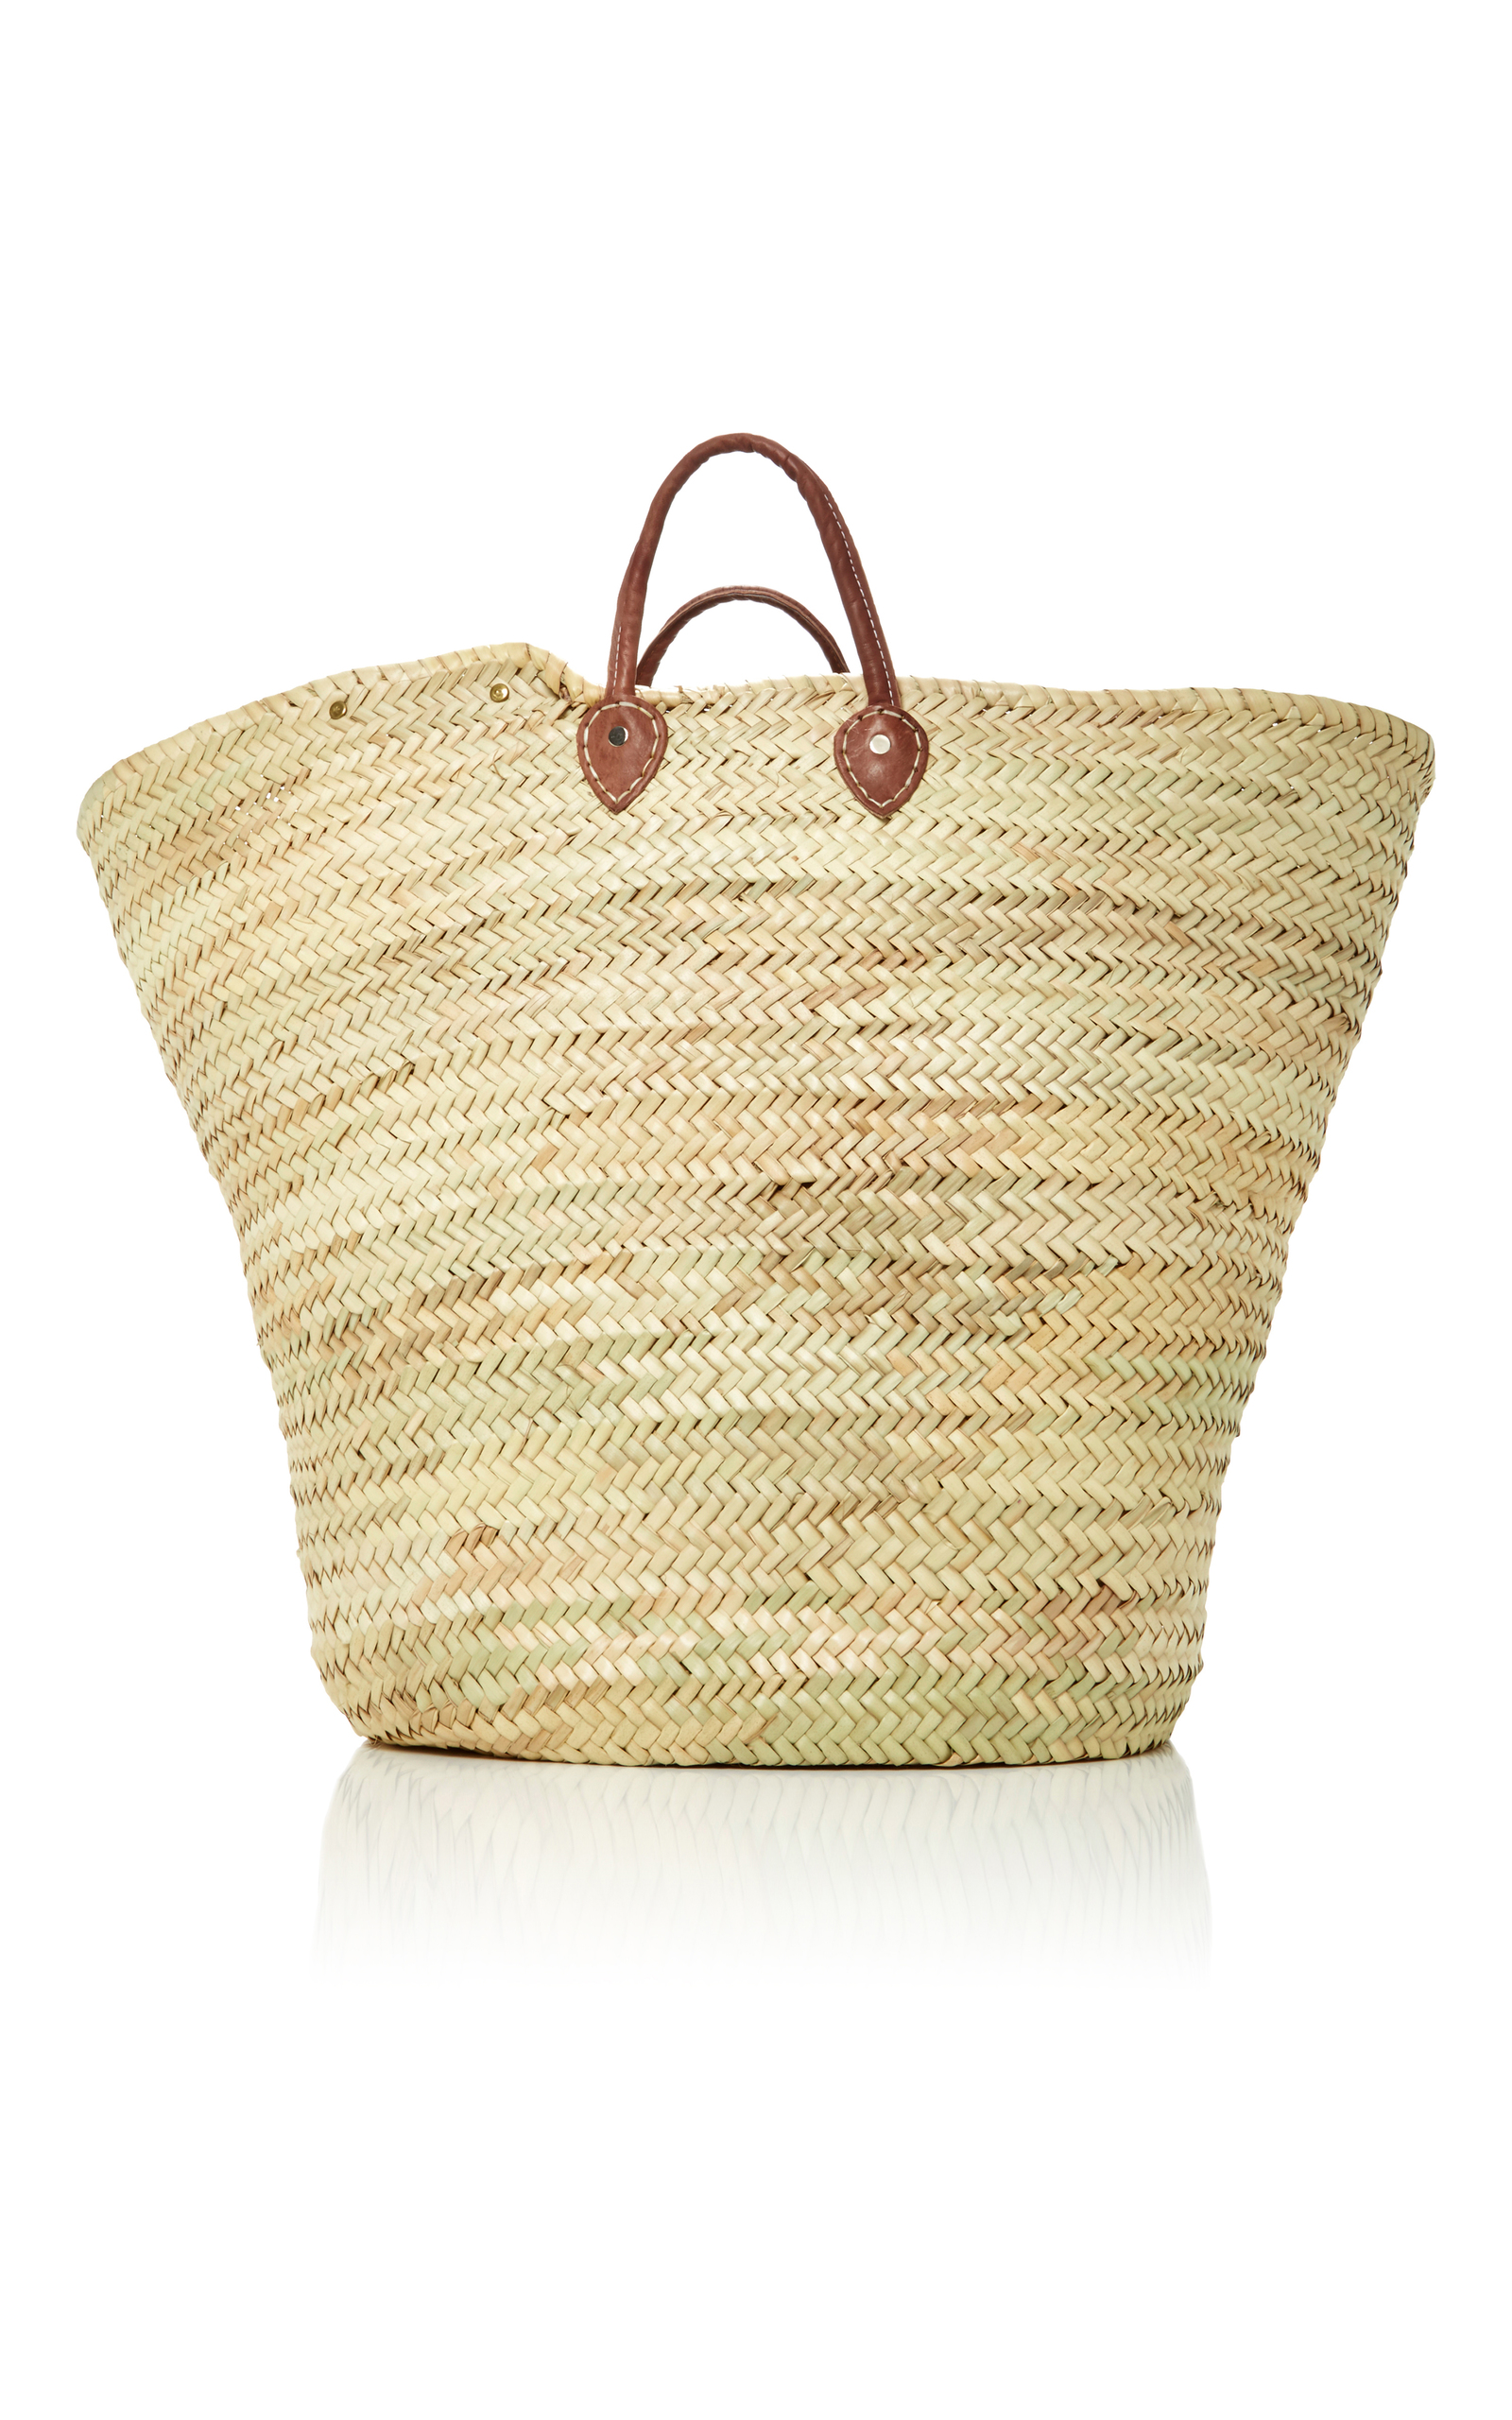 MO Exclusive Le Gran Maman Embroidered Straw Tote Poolside kLvno